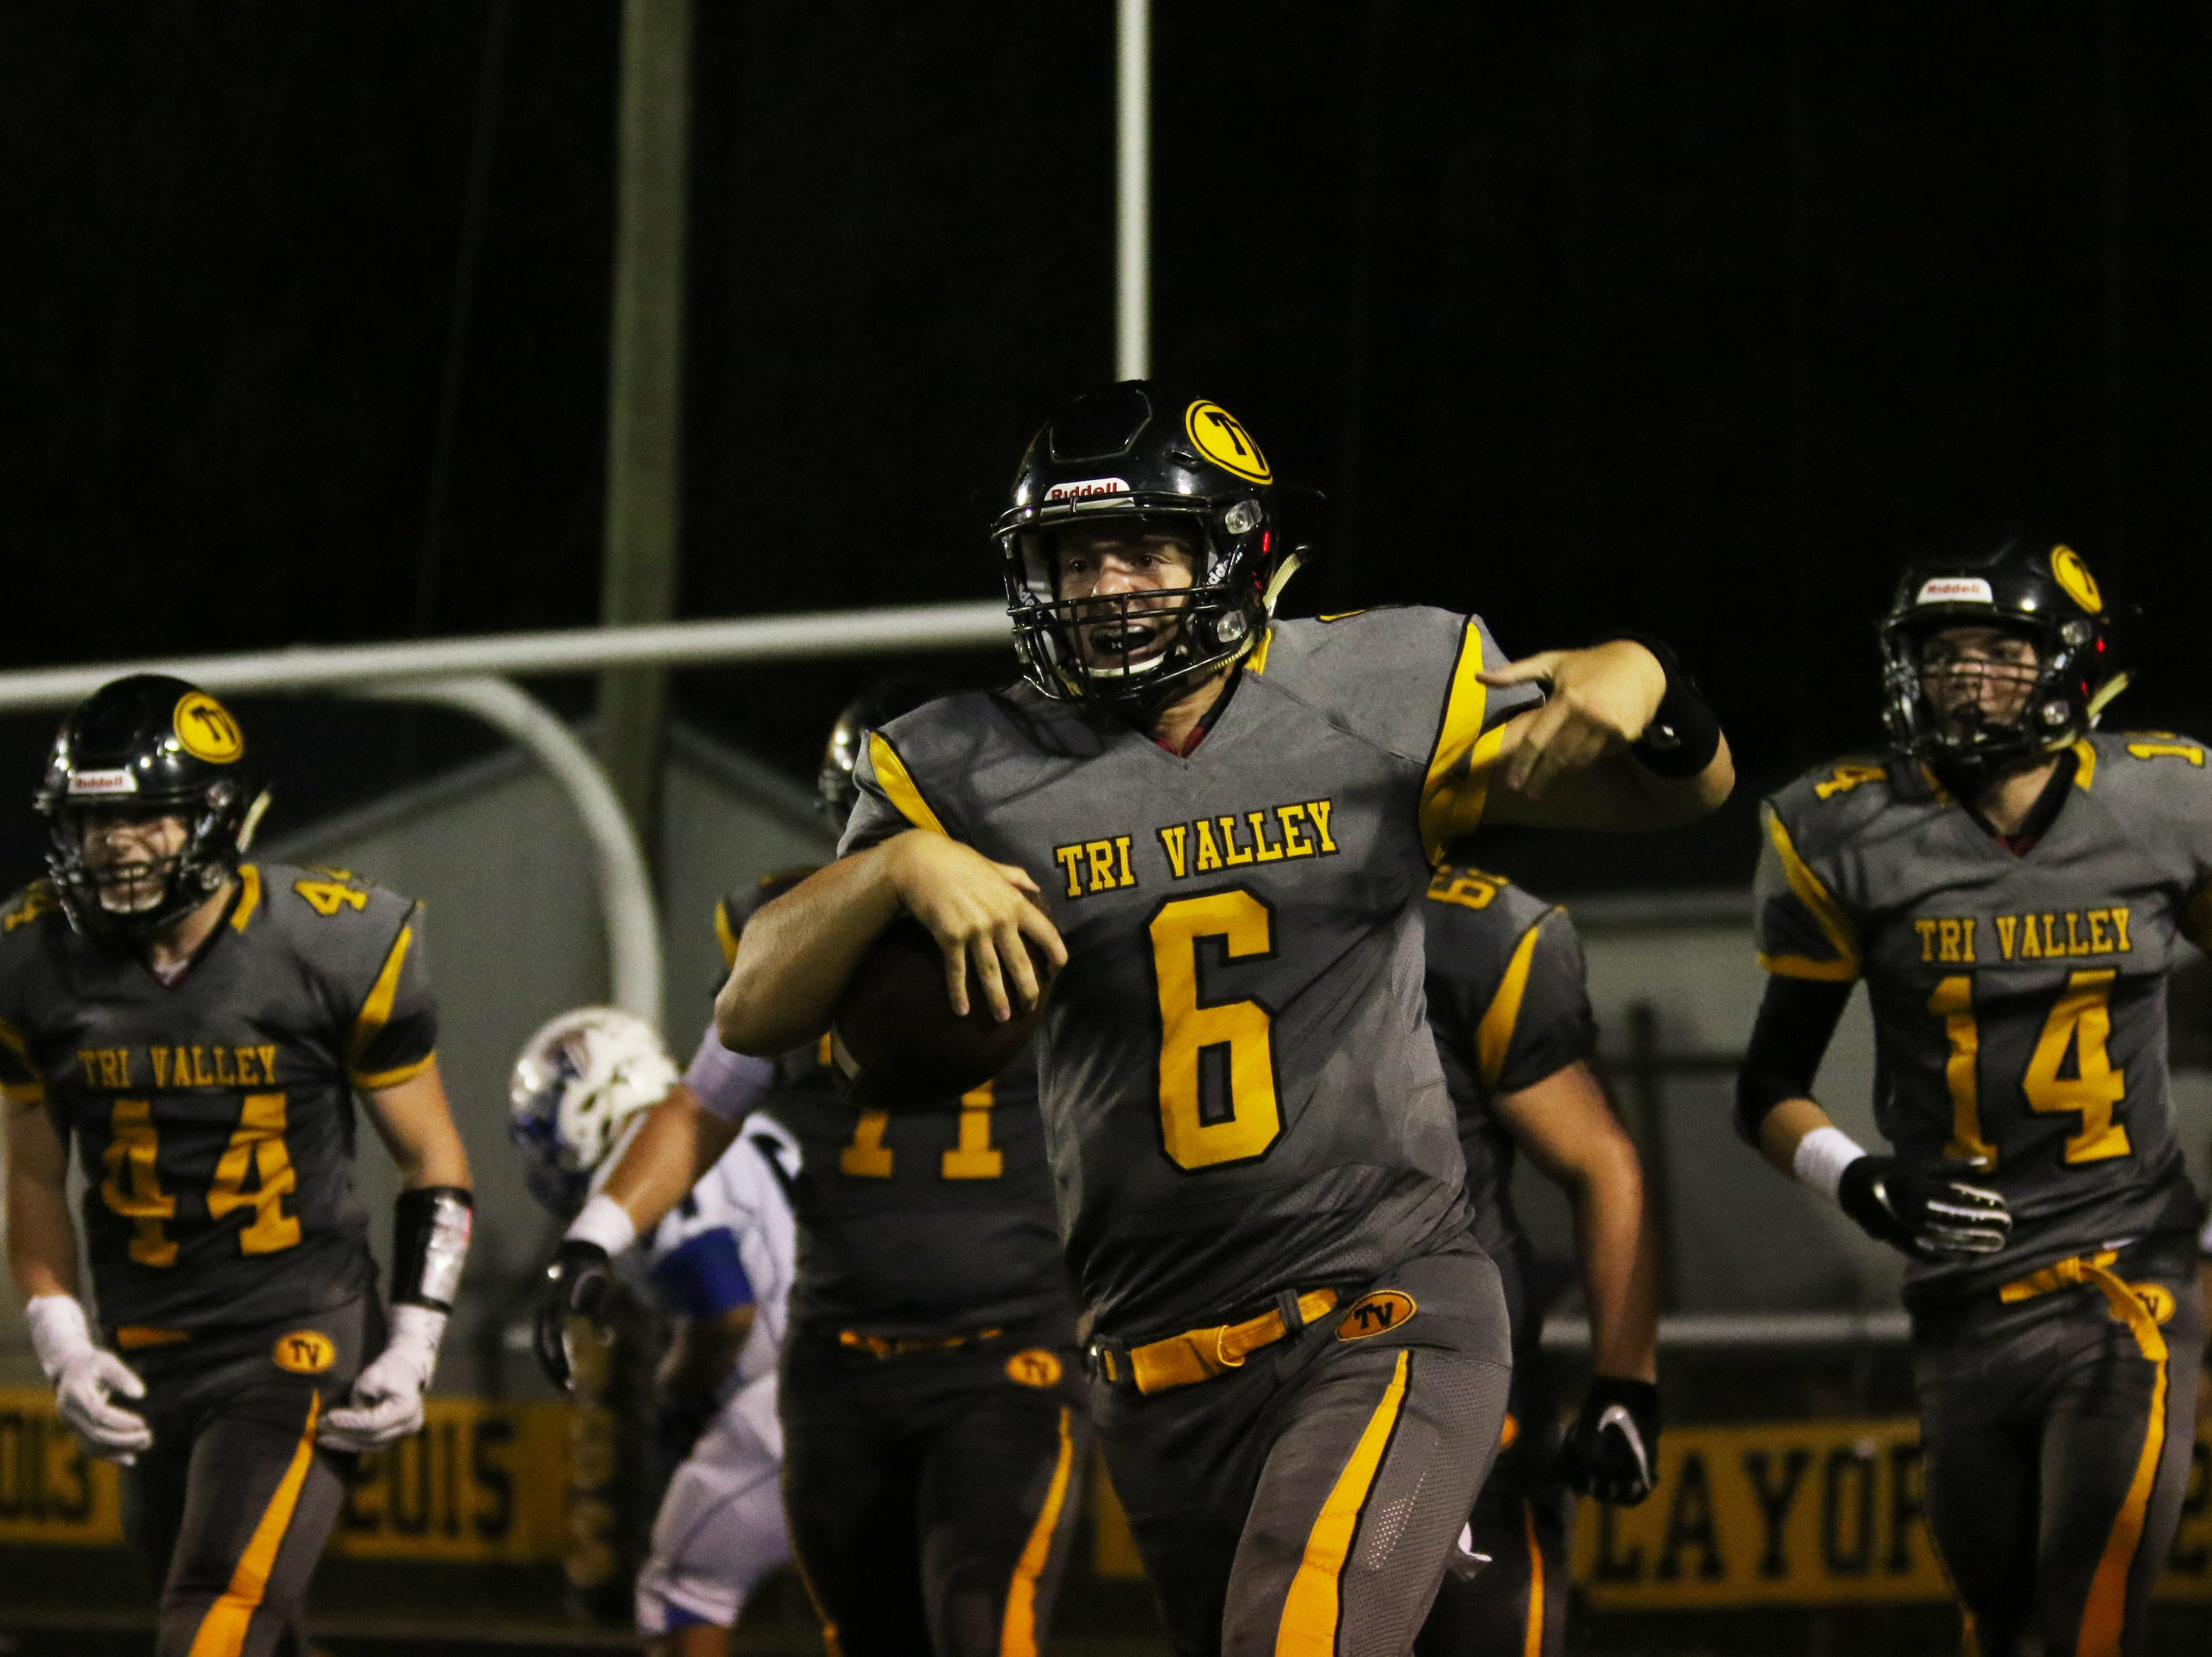 Tri-Valley's Luke Fargus celebrates a Tri-Valley touchdown against Zanesville.